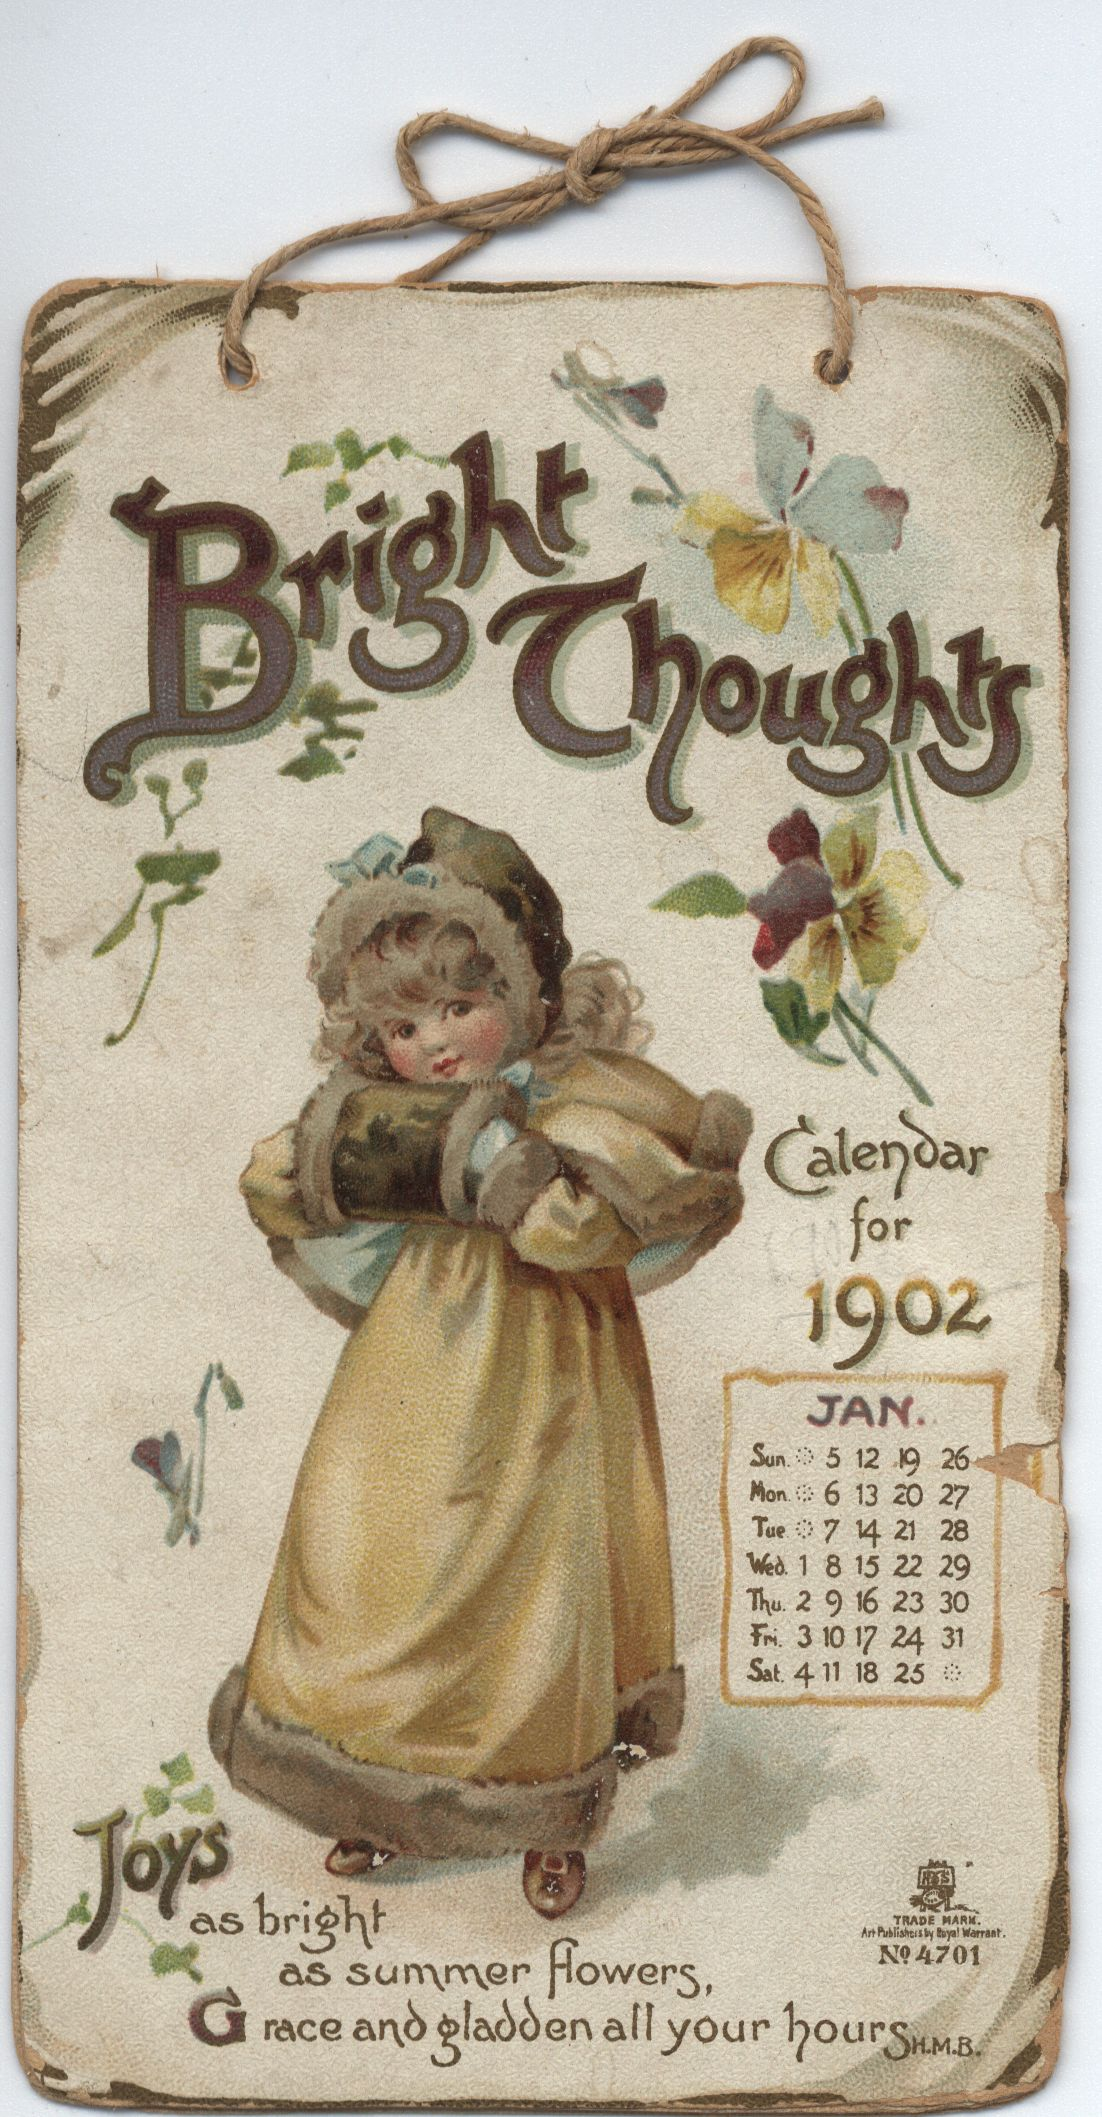 BRIGHT THOUGHTS CALENDAR FOR 1902